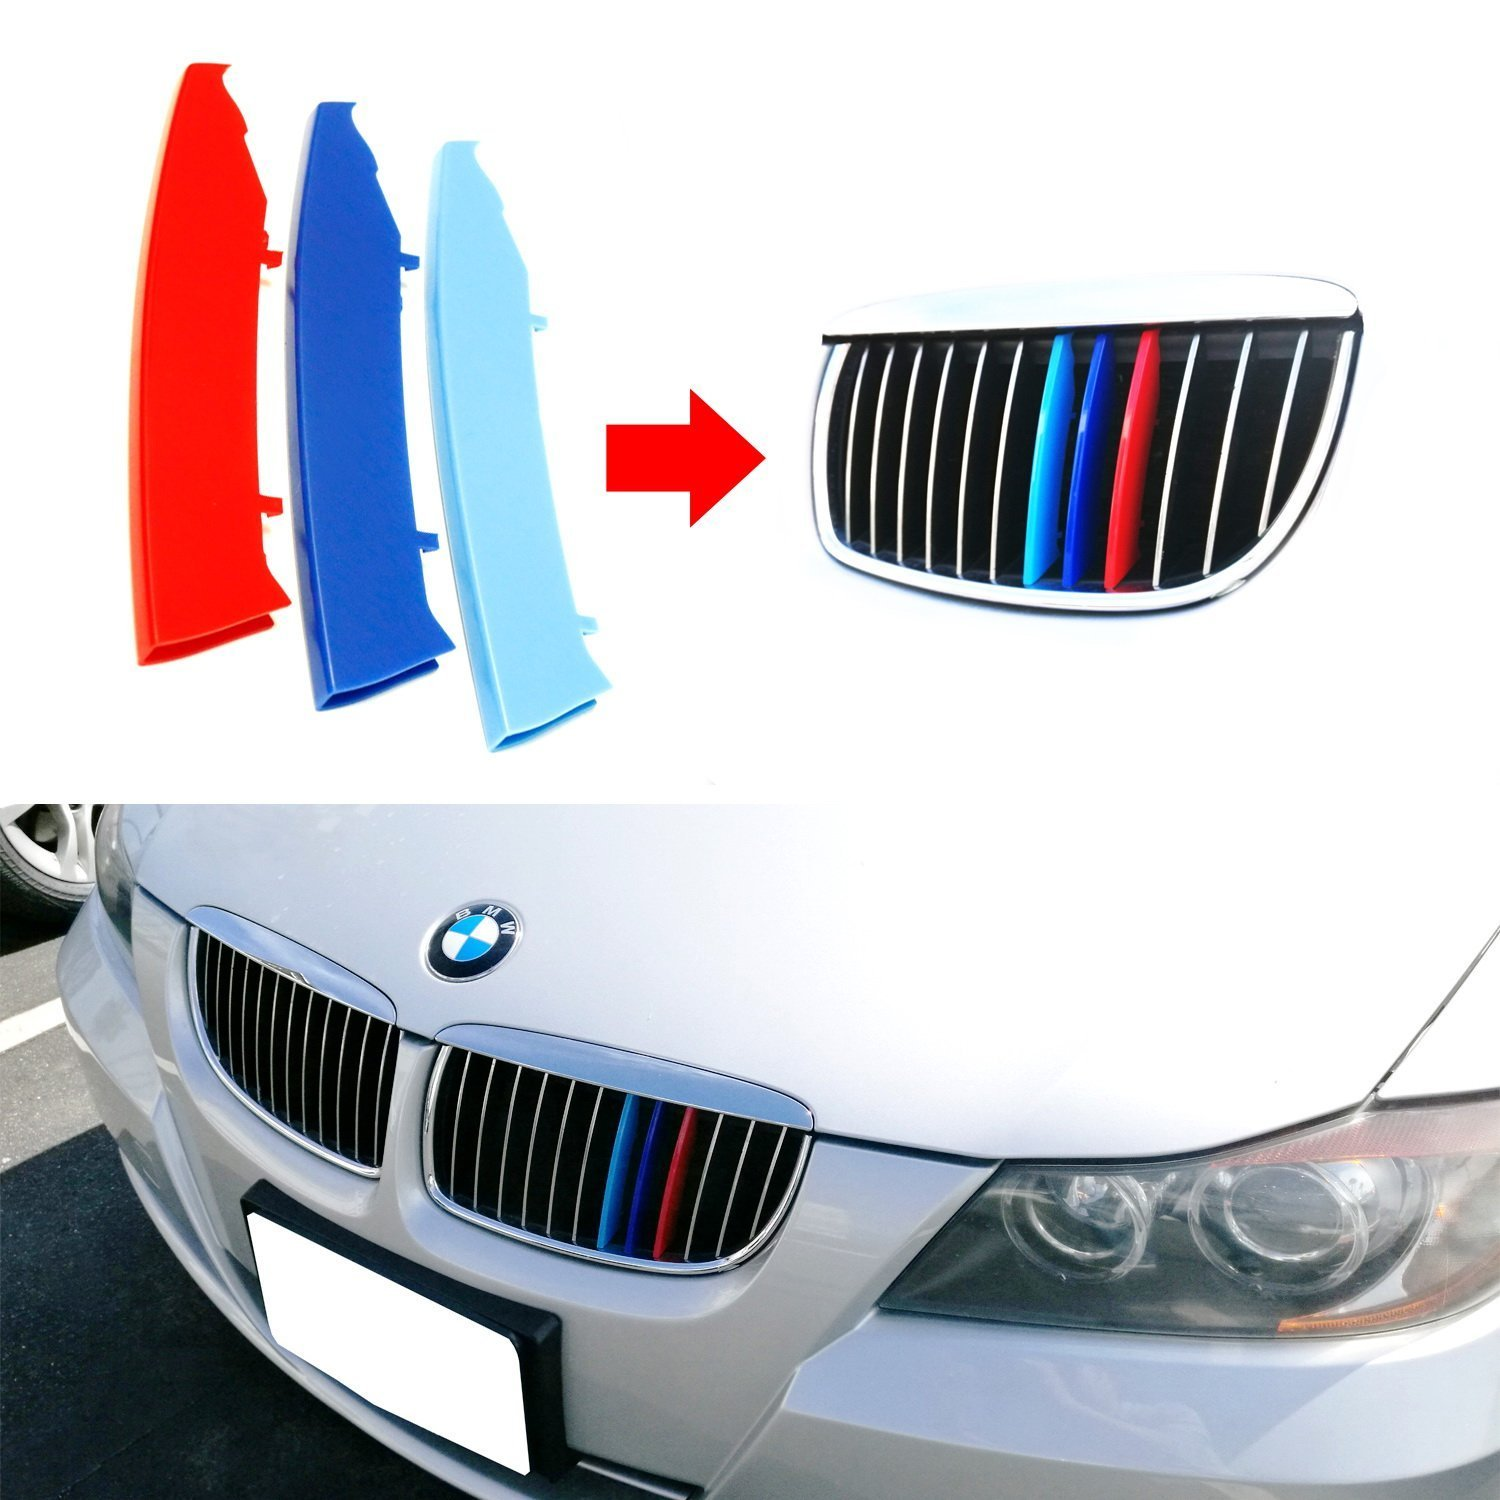 lanyun BMW M Colors(red blue light blue) Grille Insert Trims Decorate For 2003-2008 E90/E91 Pre-LCI 3 Series w/12-Beam Grill